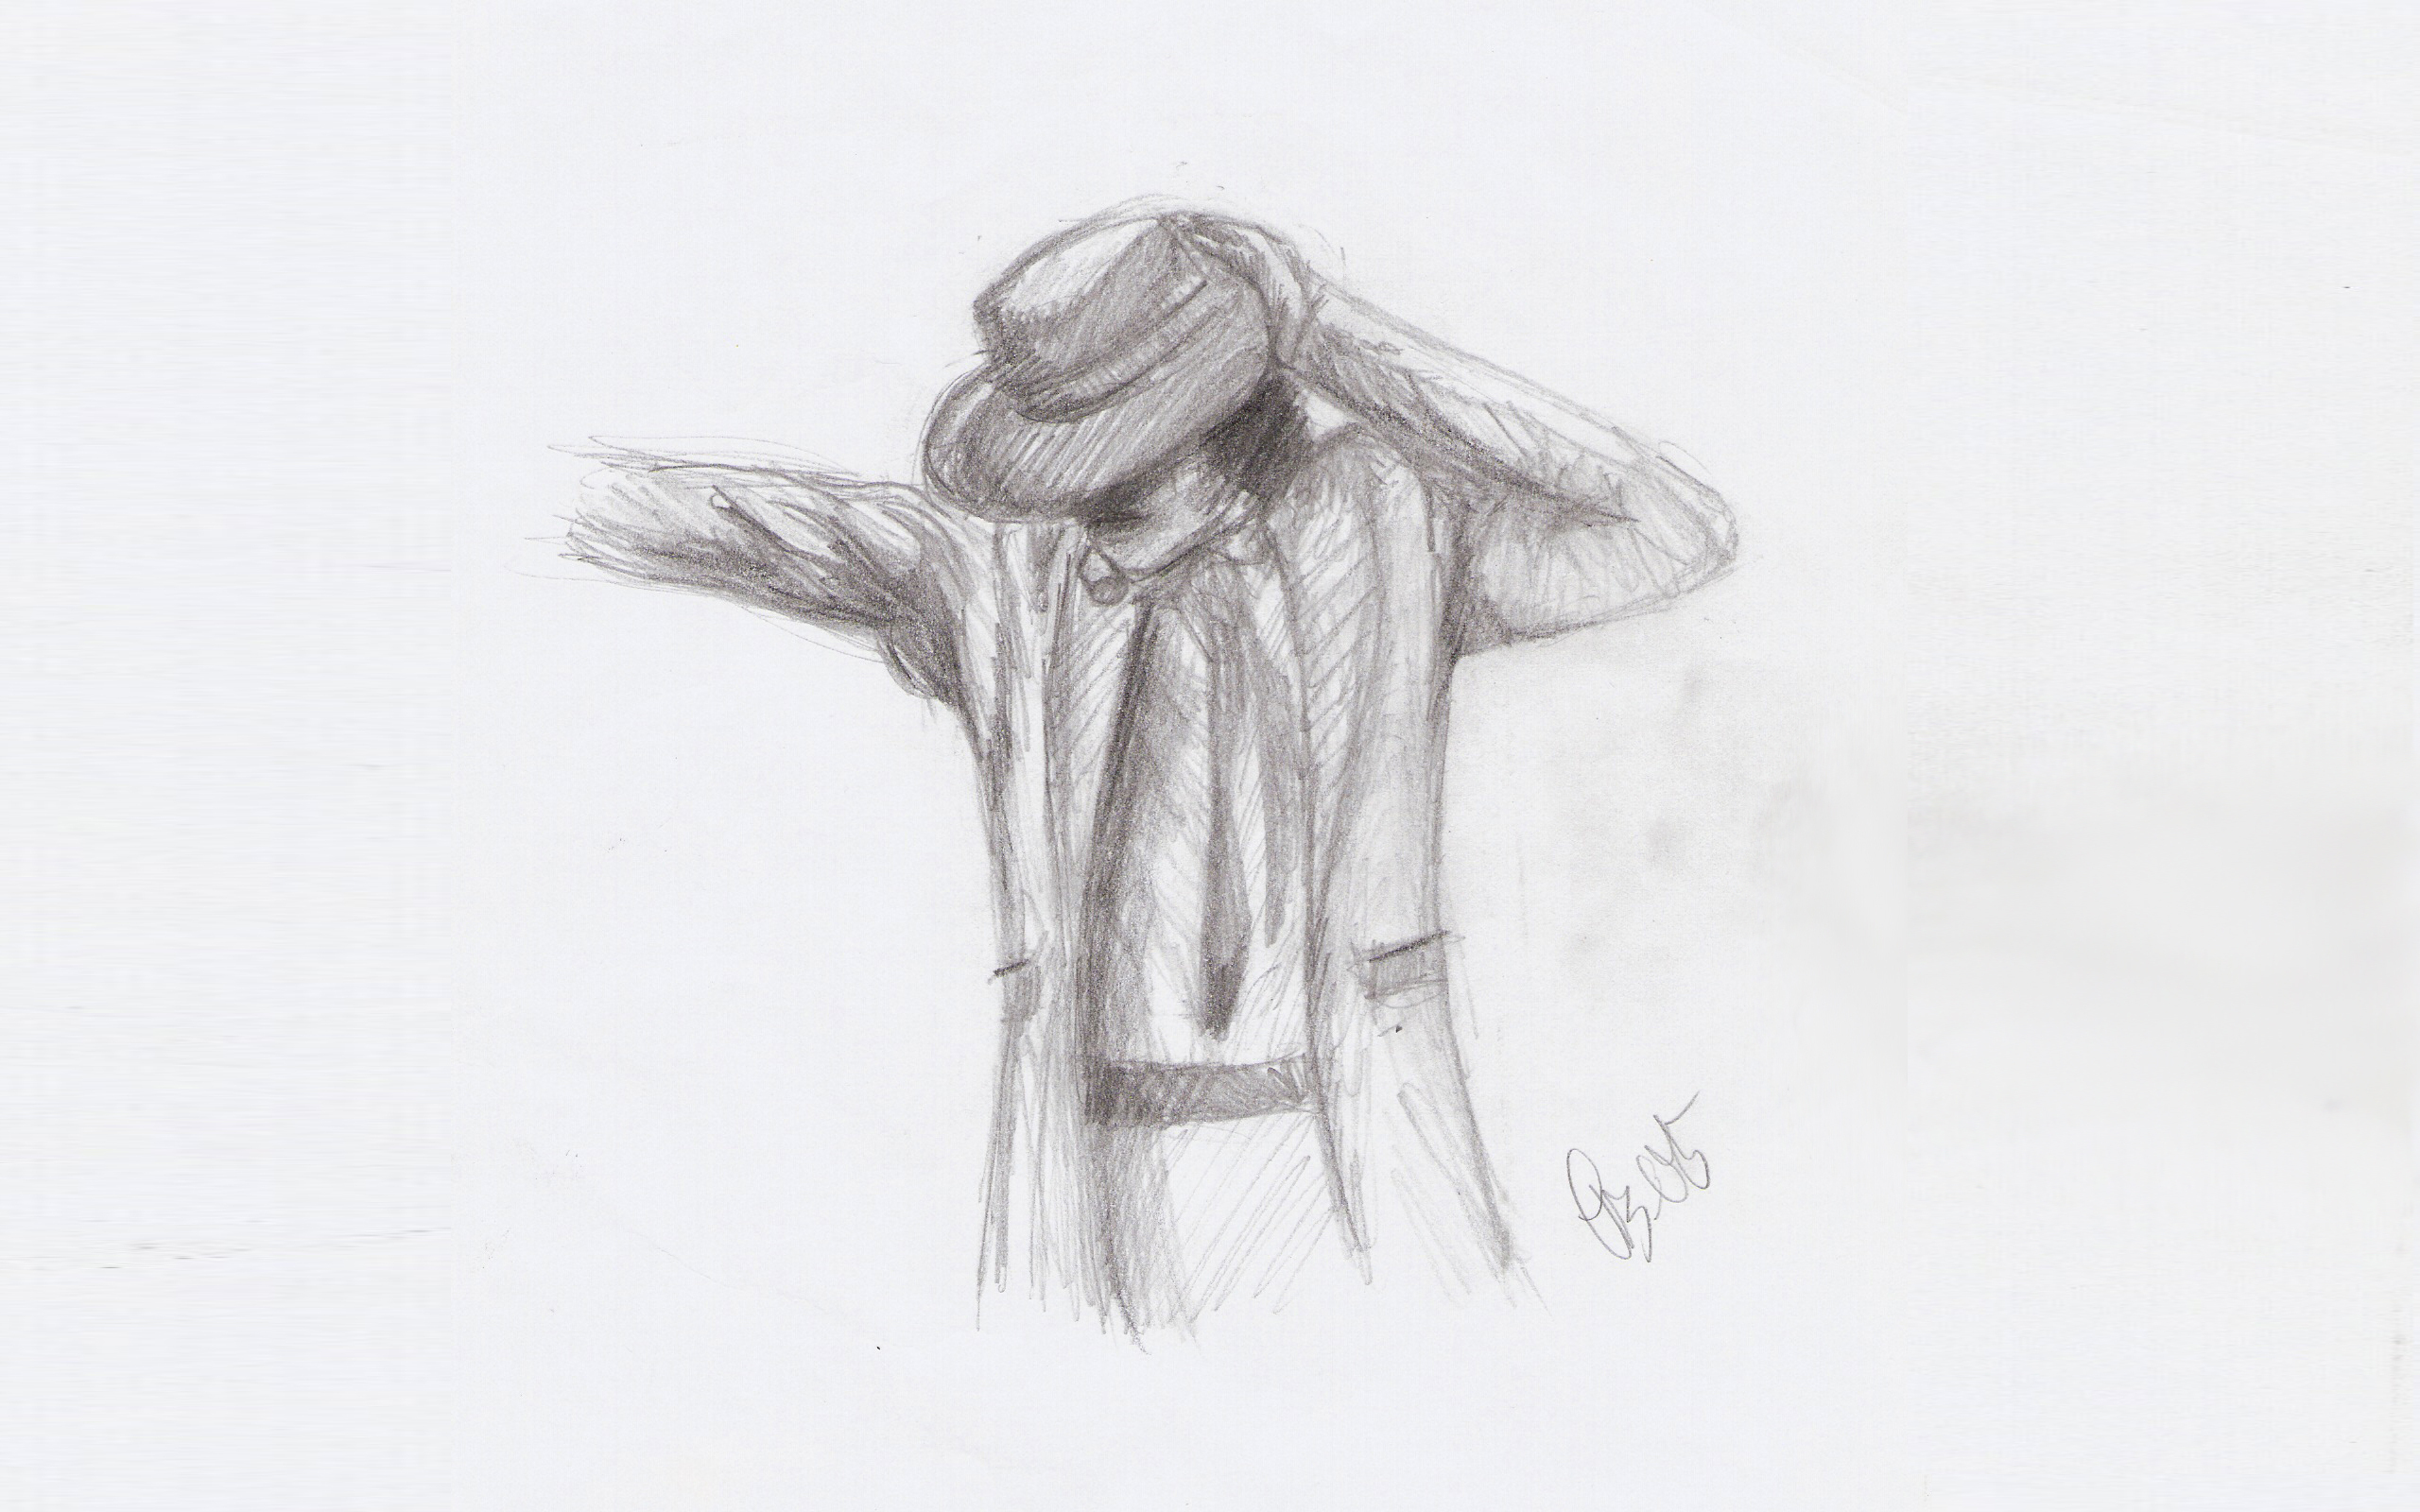 michael jackson sketch smooth - photo #21